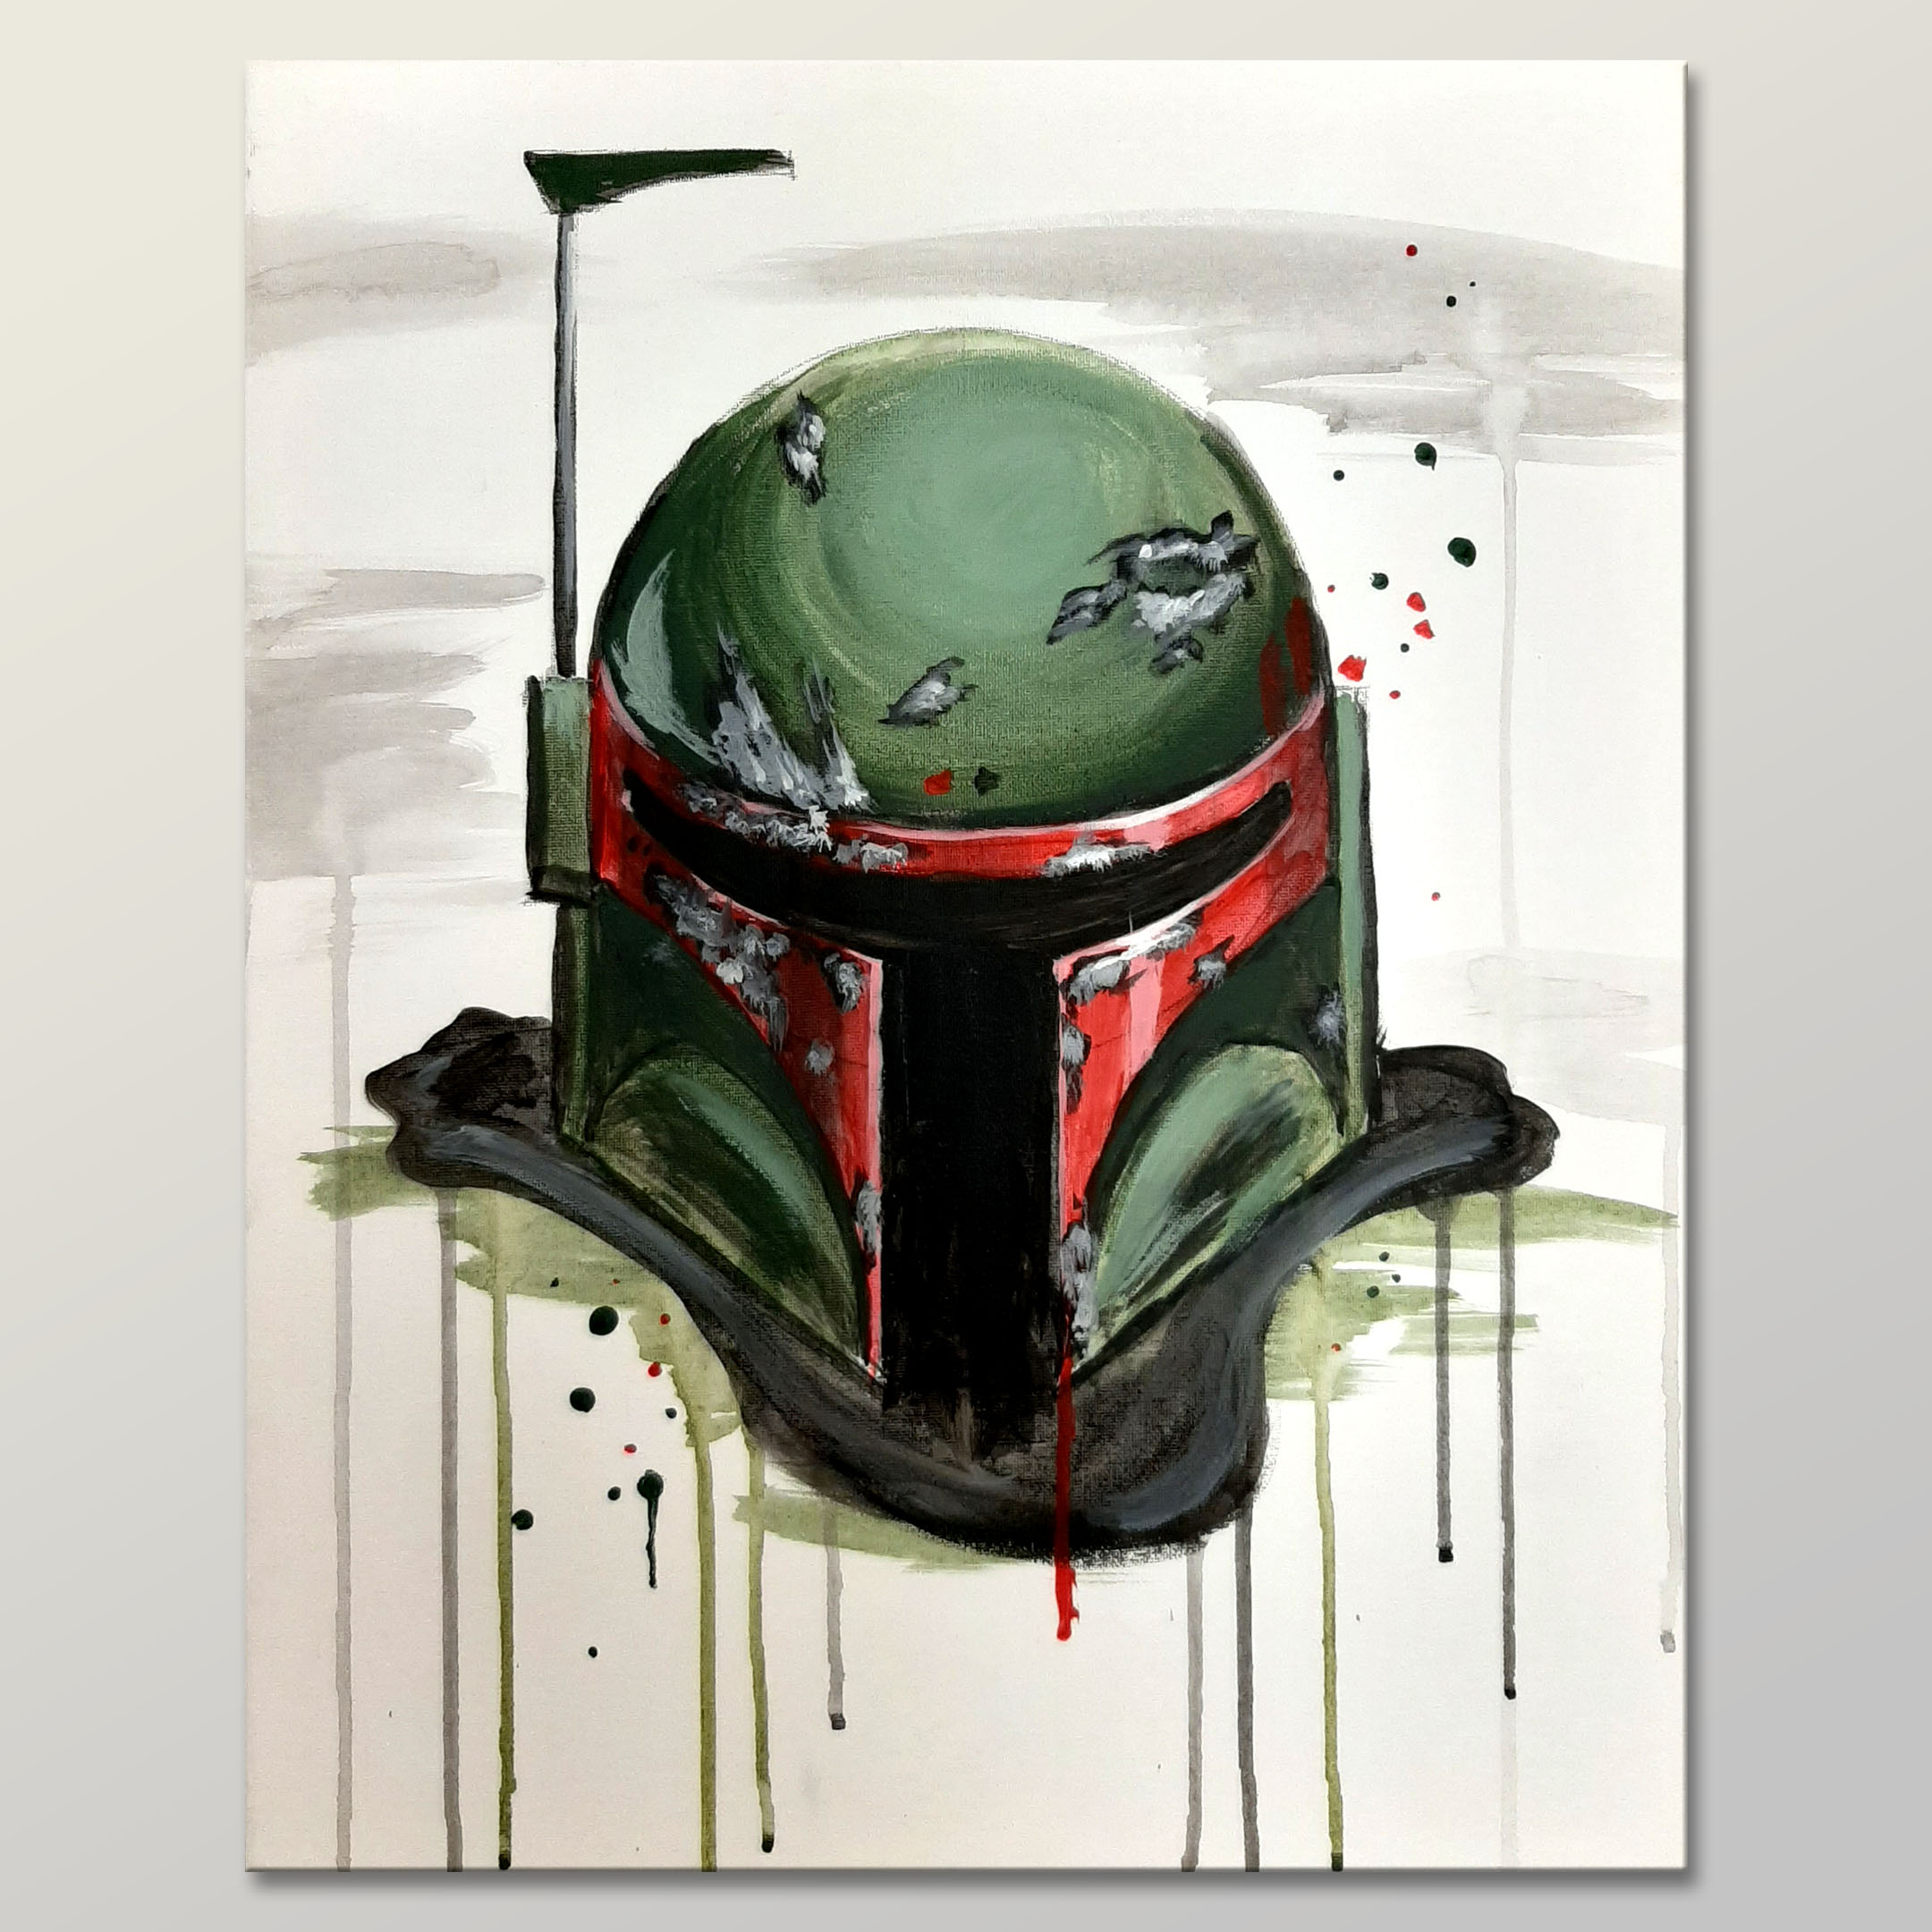 A Fett experience project by Yaymaker